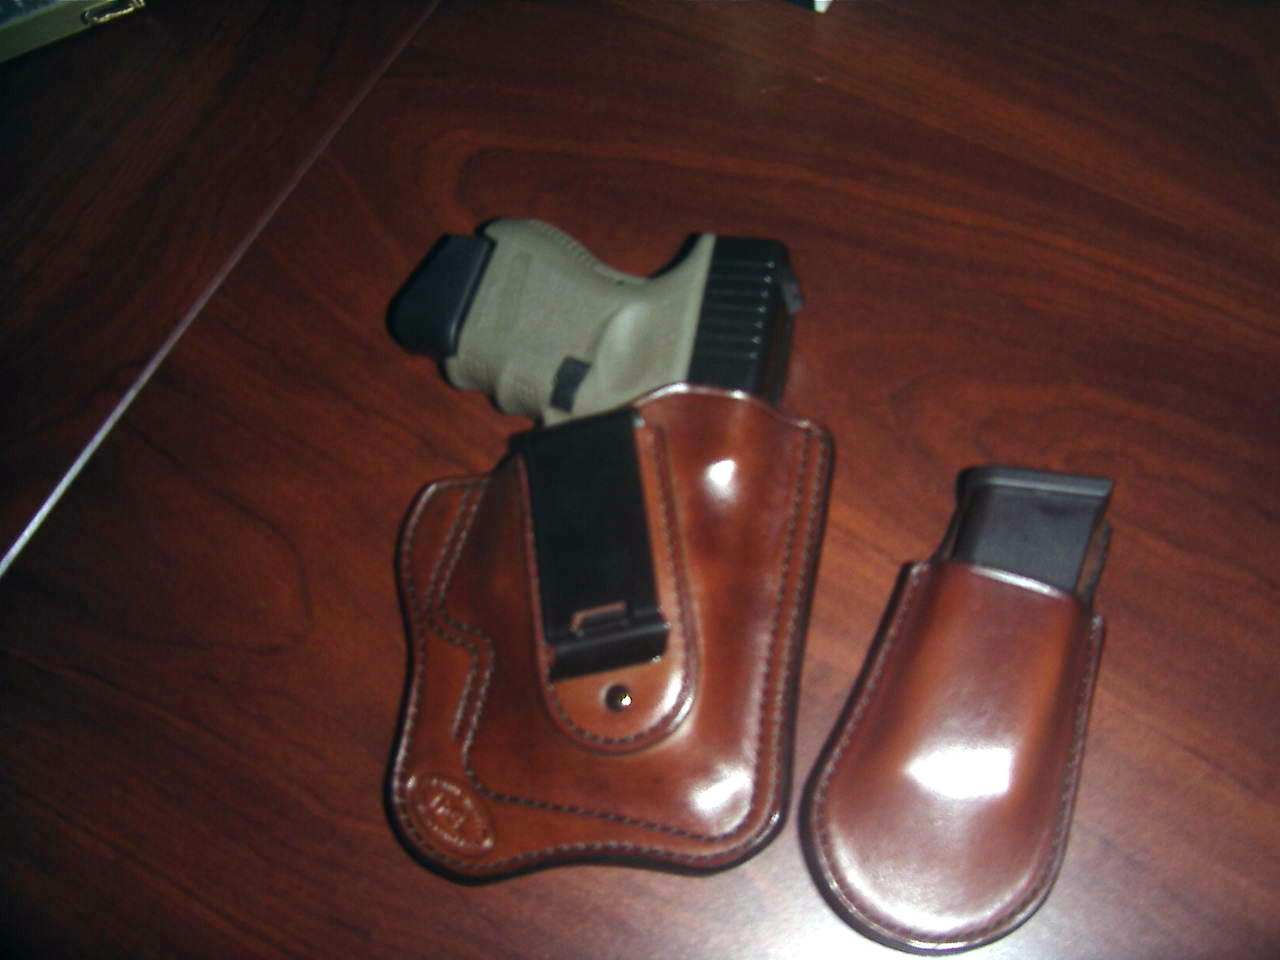 New holster & mag pouch for my Glock 27.-mlna0015-2-.jpg